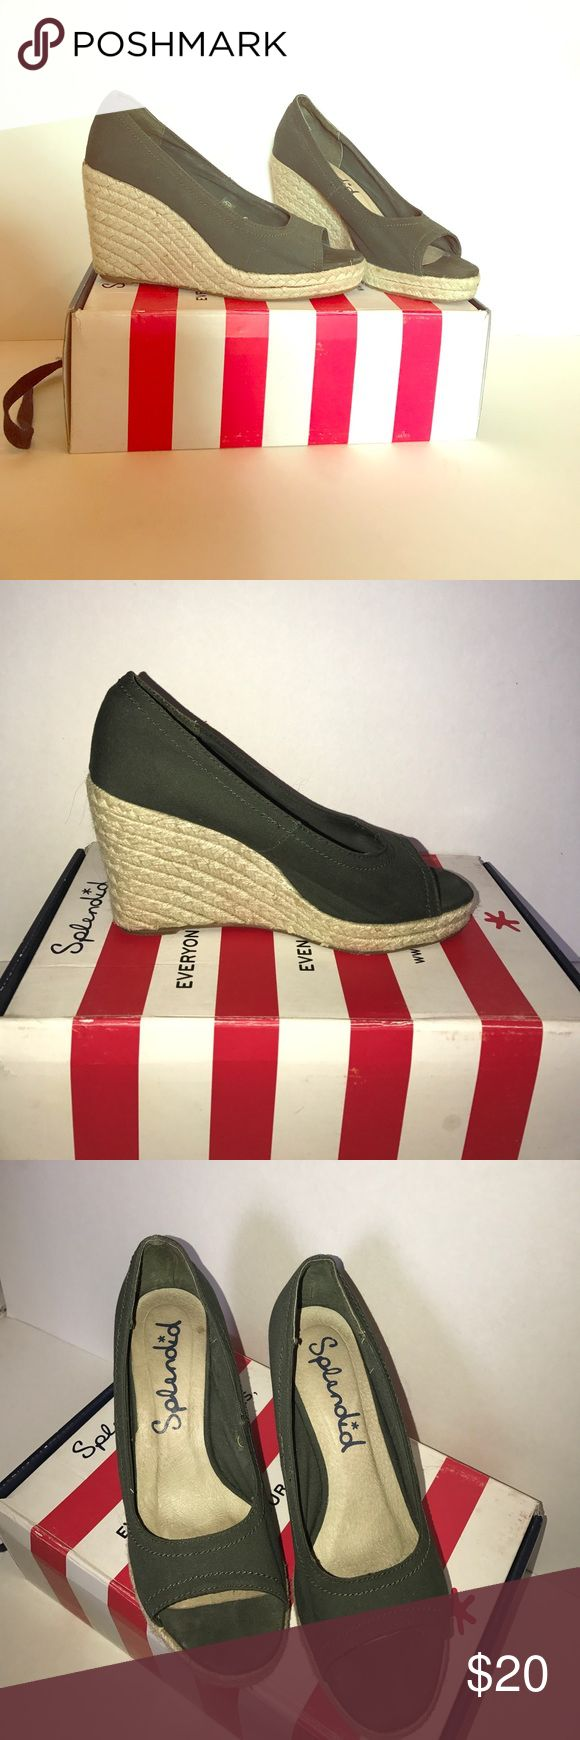 Splendid Espadrilles Gently used Splendid espadrilles perfect for summer! Barely worn, but does have a few spots (please see photos) so they are not perfect.  Price reflects imperfection (and no one will notice anyways!) Enjoy! Splendid Shoes Espadrilles